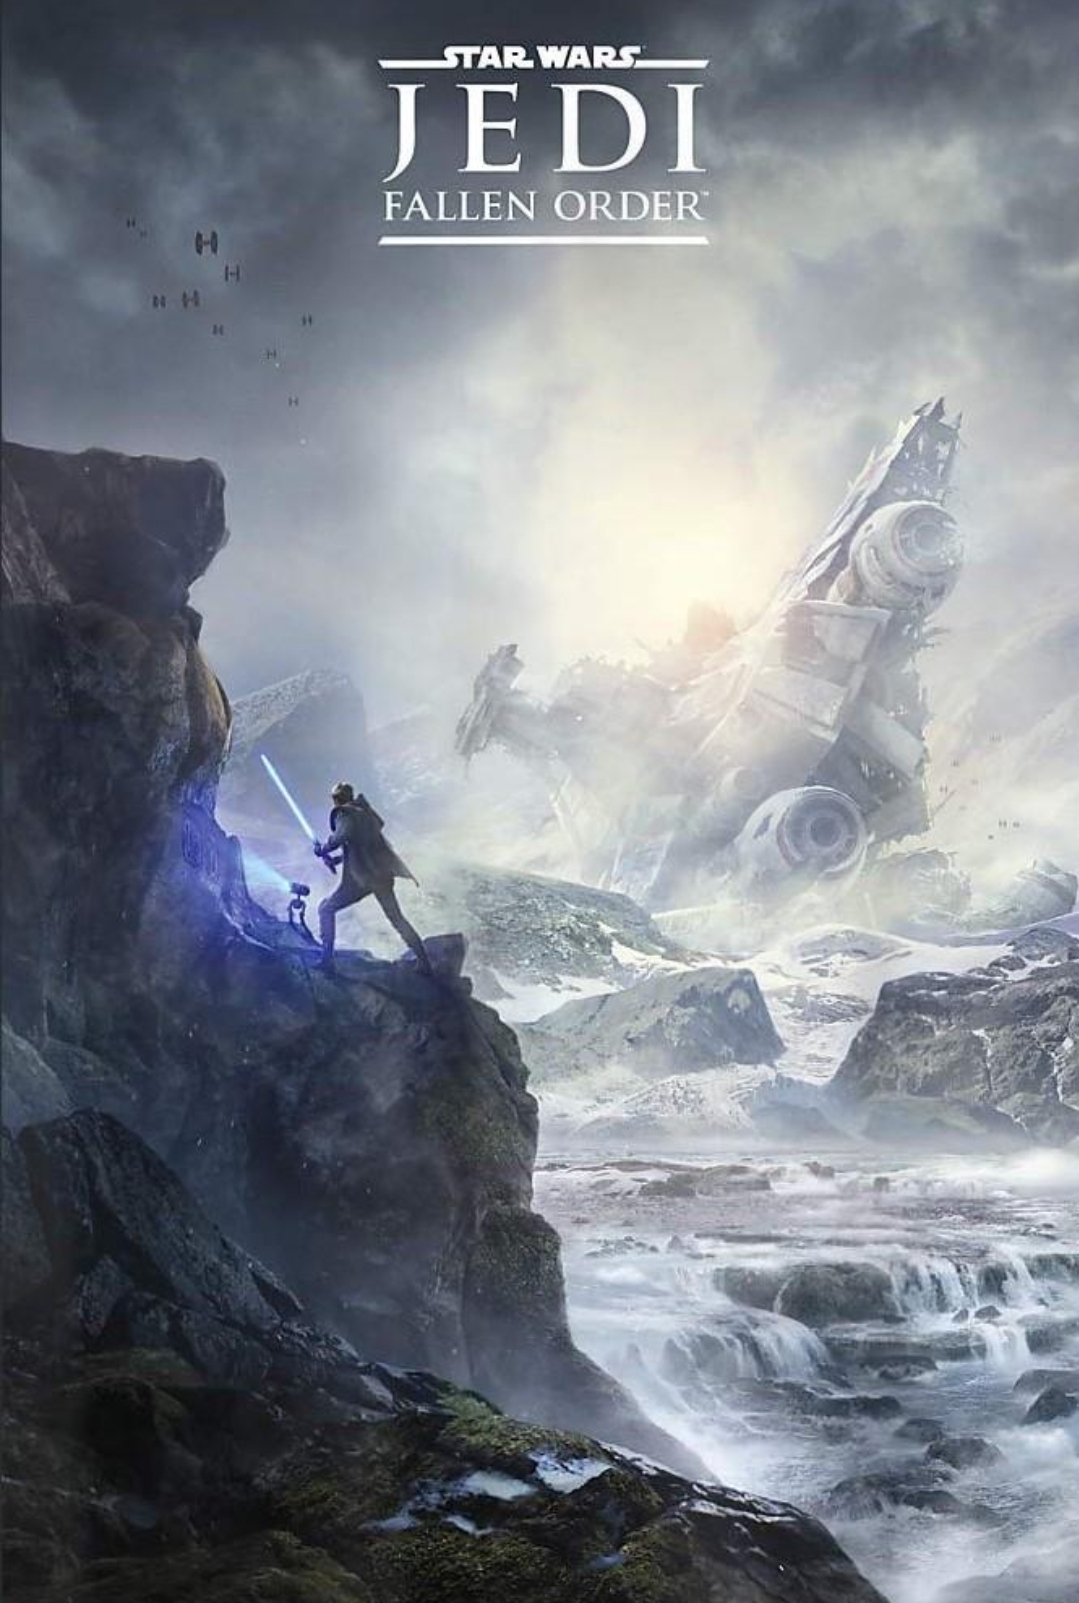 Star Wars Jedi: The Fallen Order artwork leaks – full reveal tomorrow